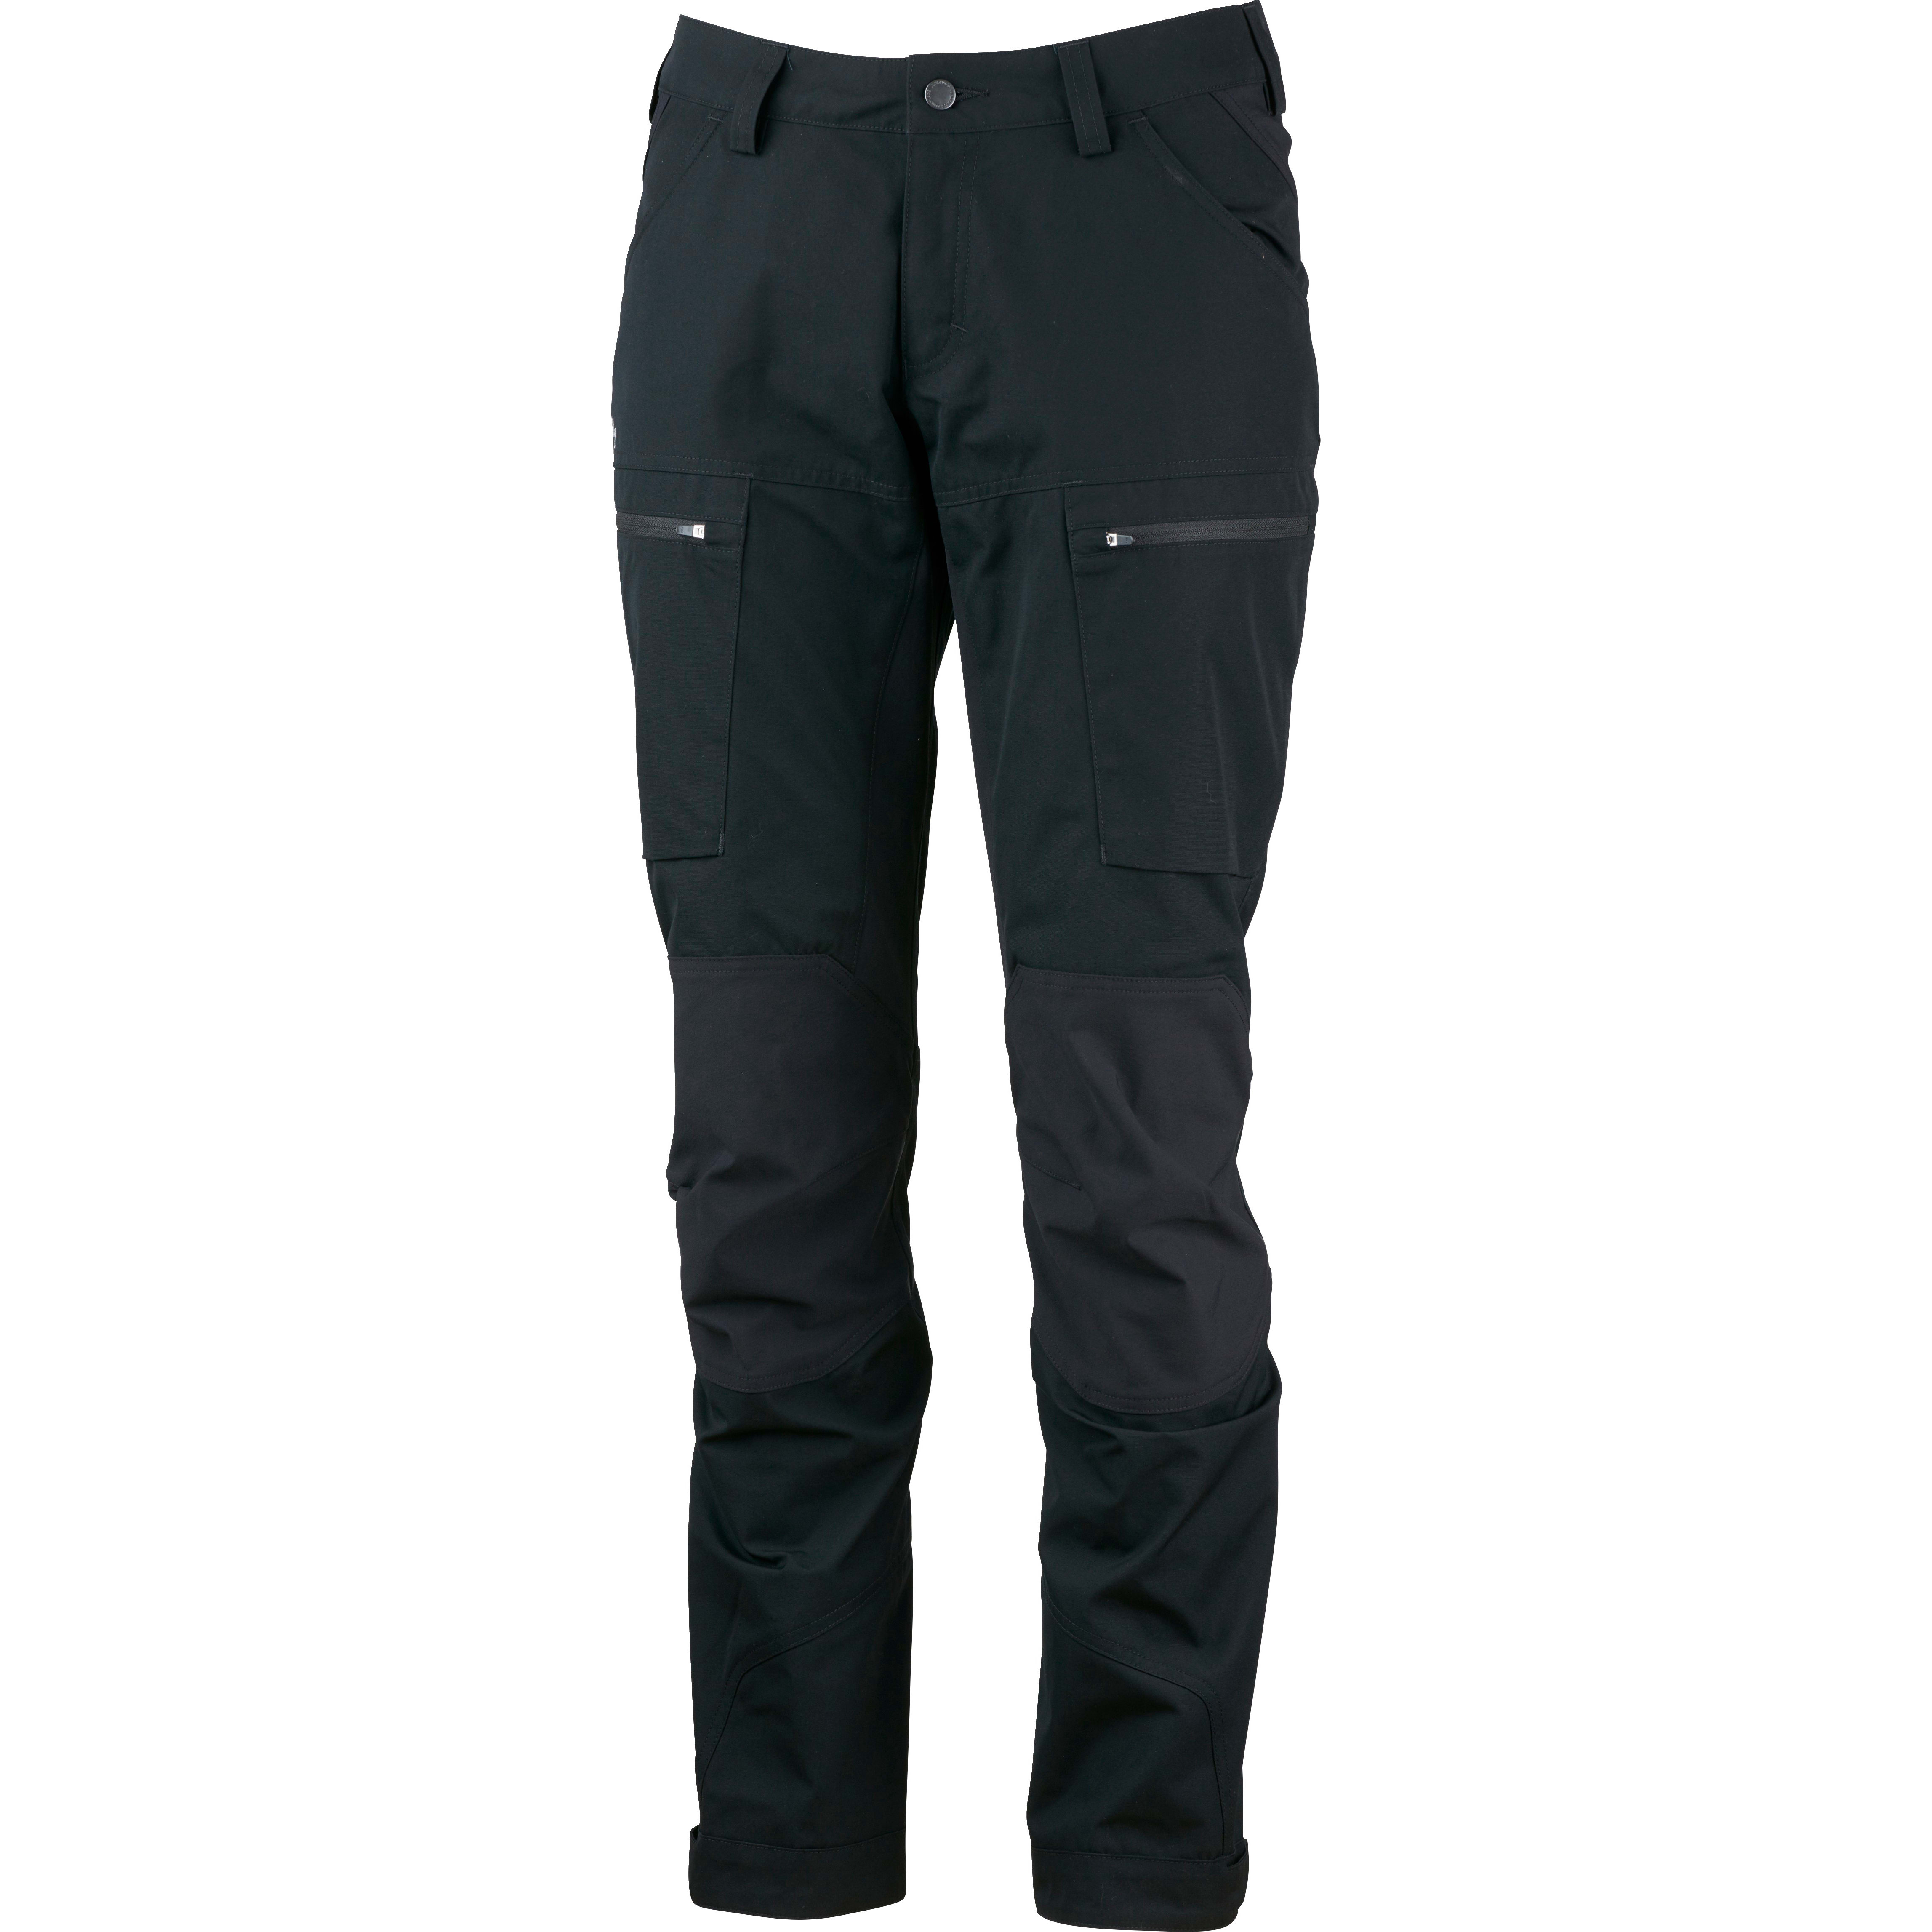 6189314e Buy Lundhags Lockne Women's Pant from Outnorth